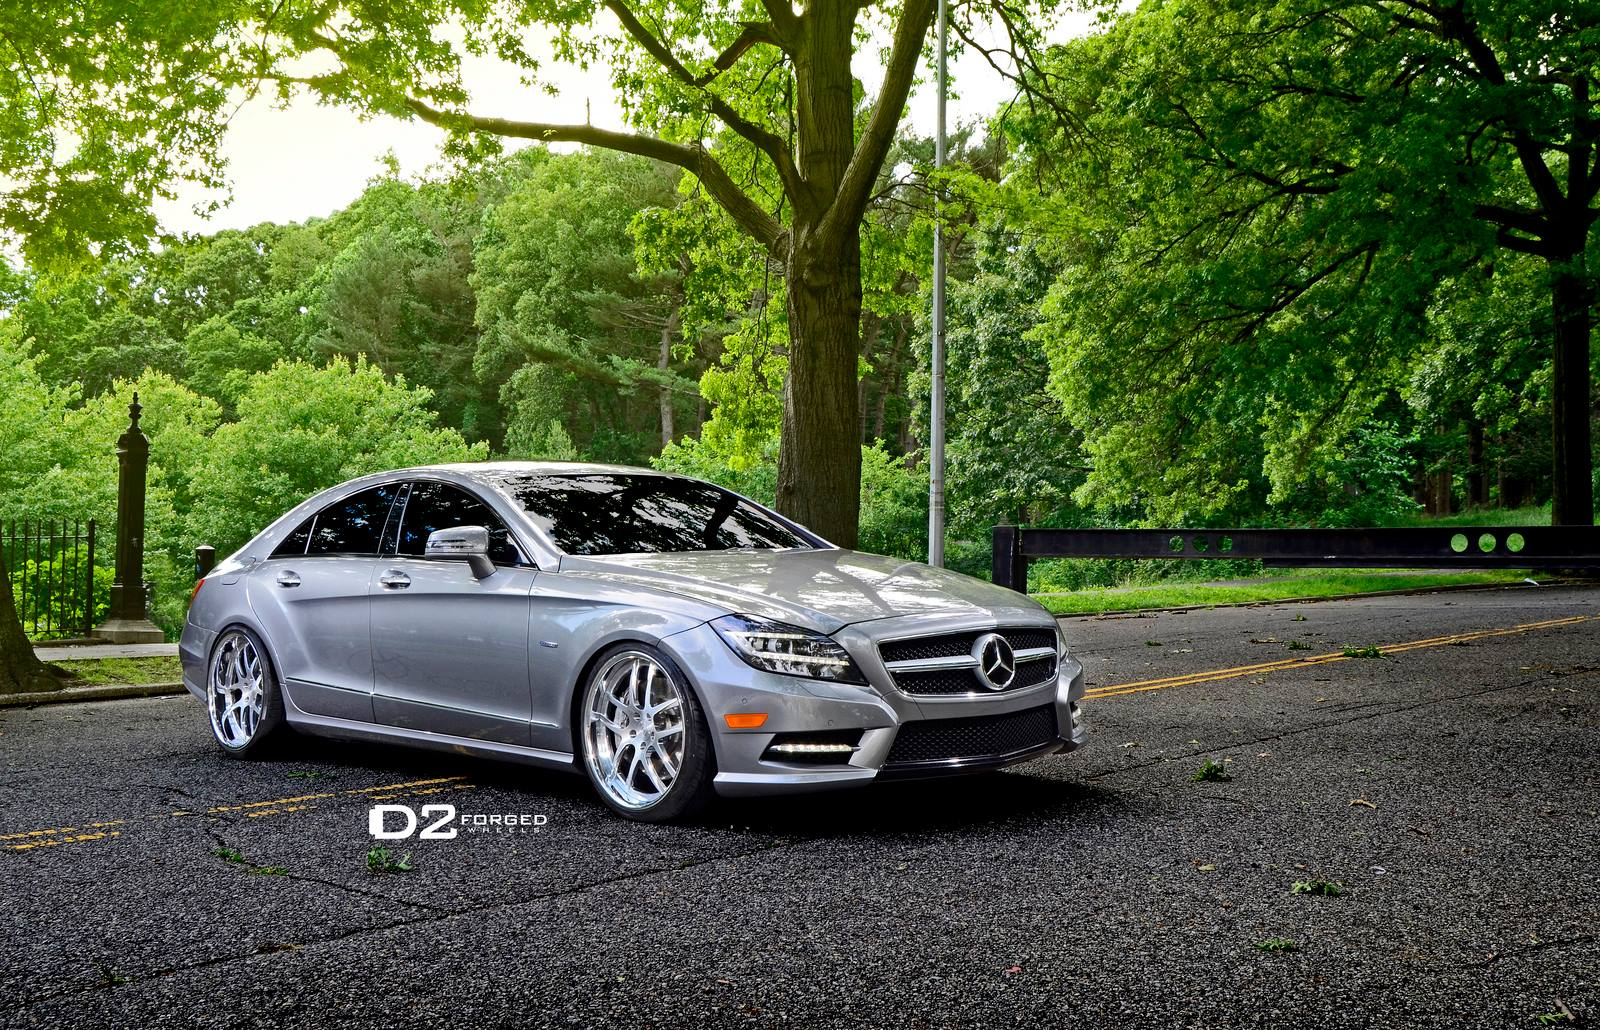 Mercedes Benz Cls550 Shines On 20 Inch D2forged Wheels Autoevolution